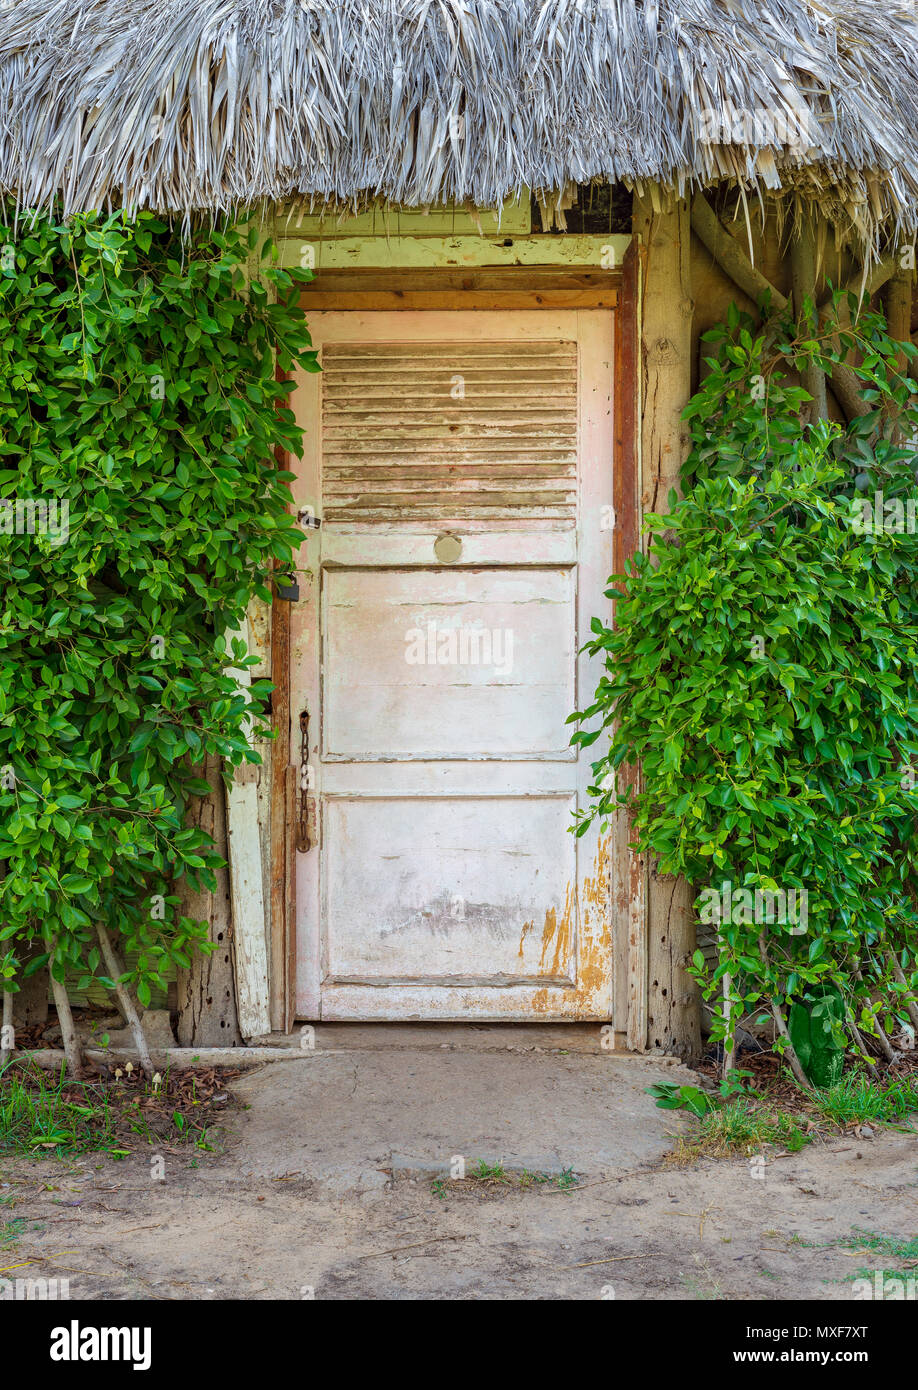 Closed wooden white grunge door surrounded by dense green plants at Montaza public park, Alexandria, Egypt - Stock Image